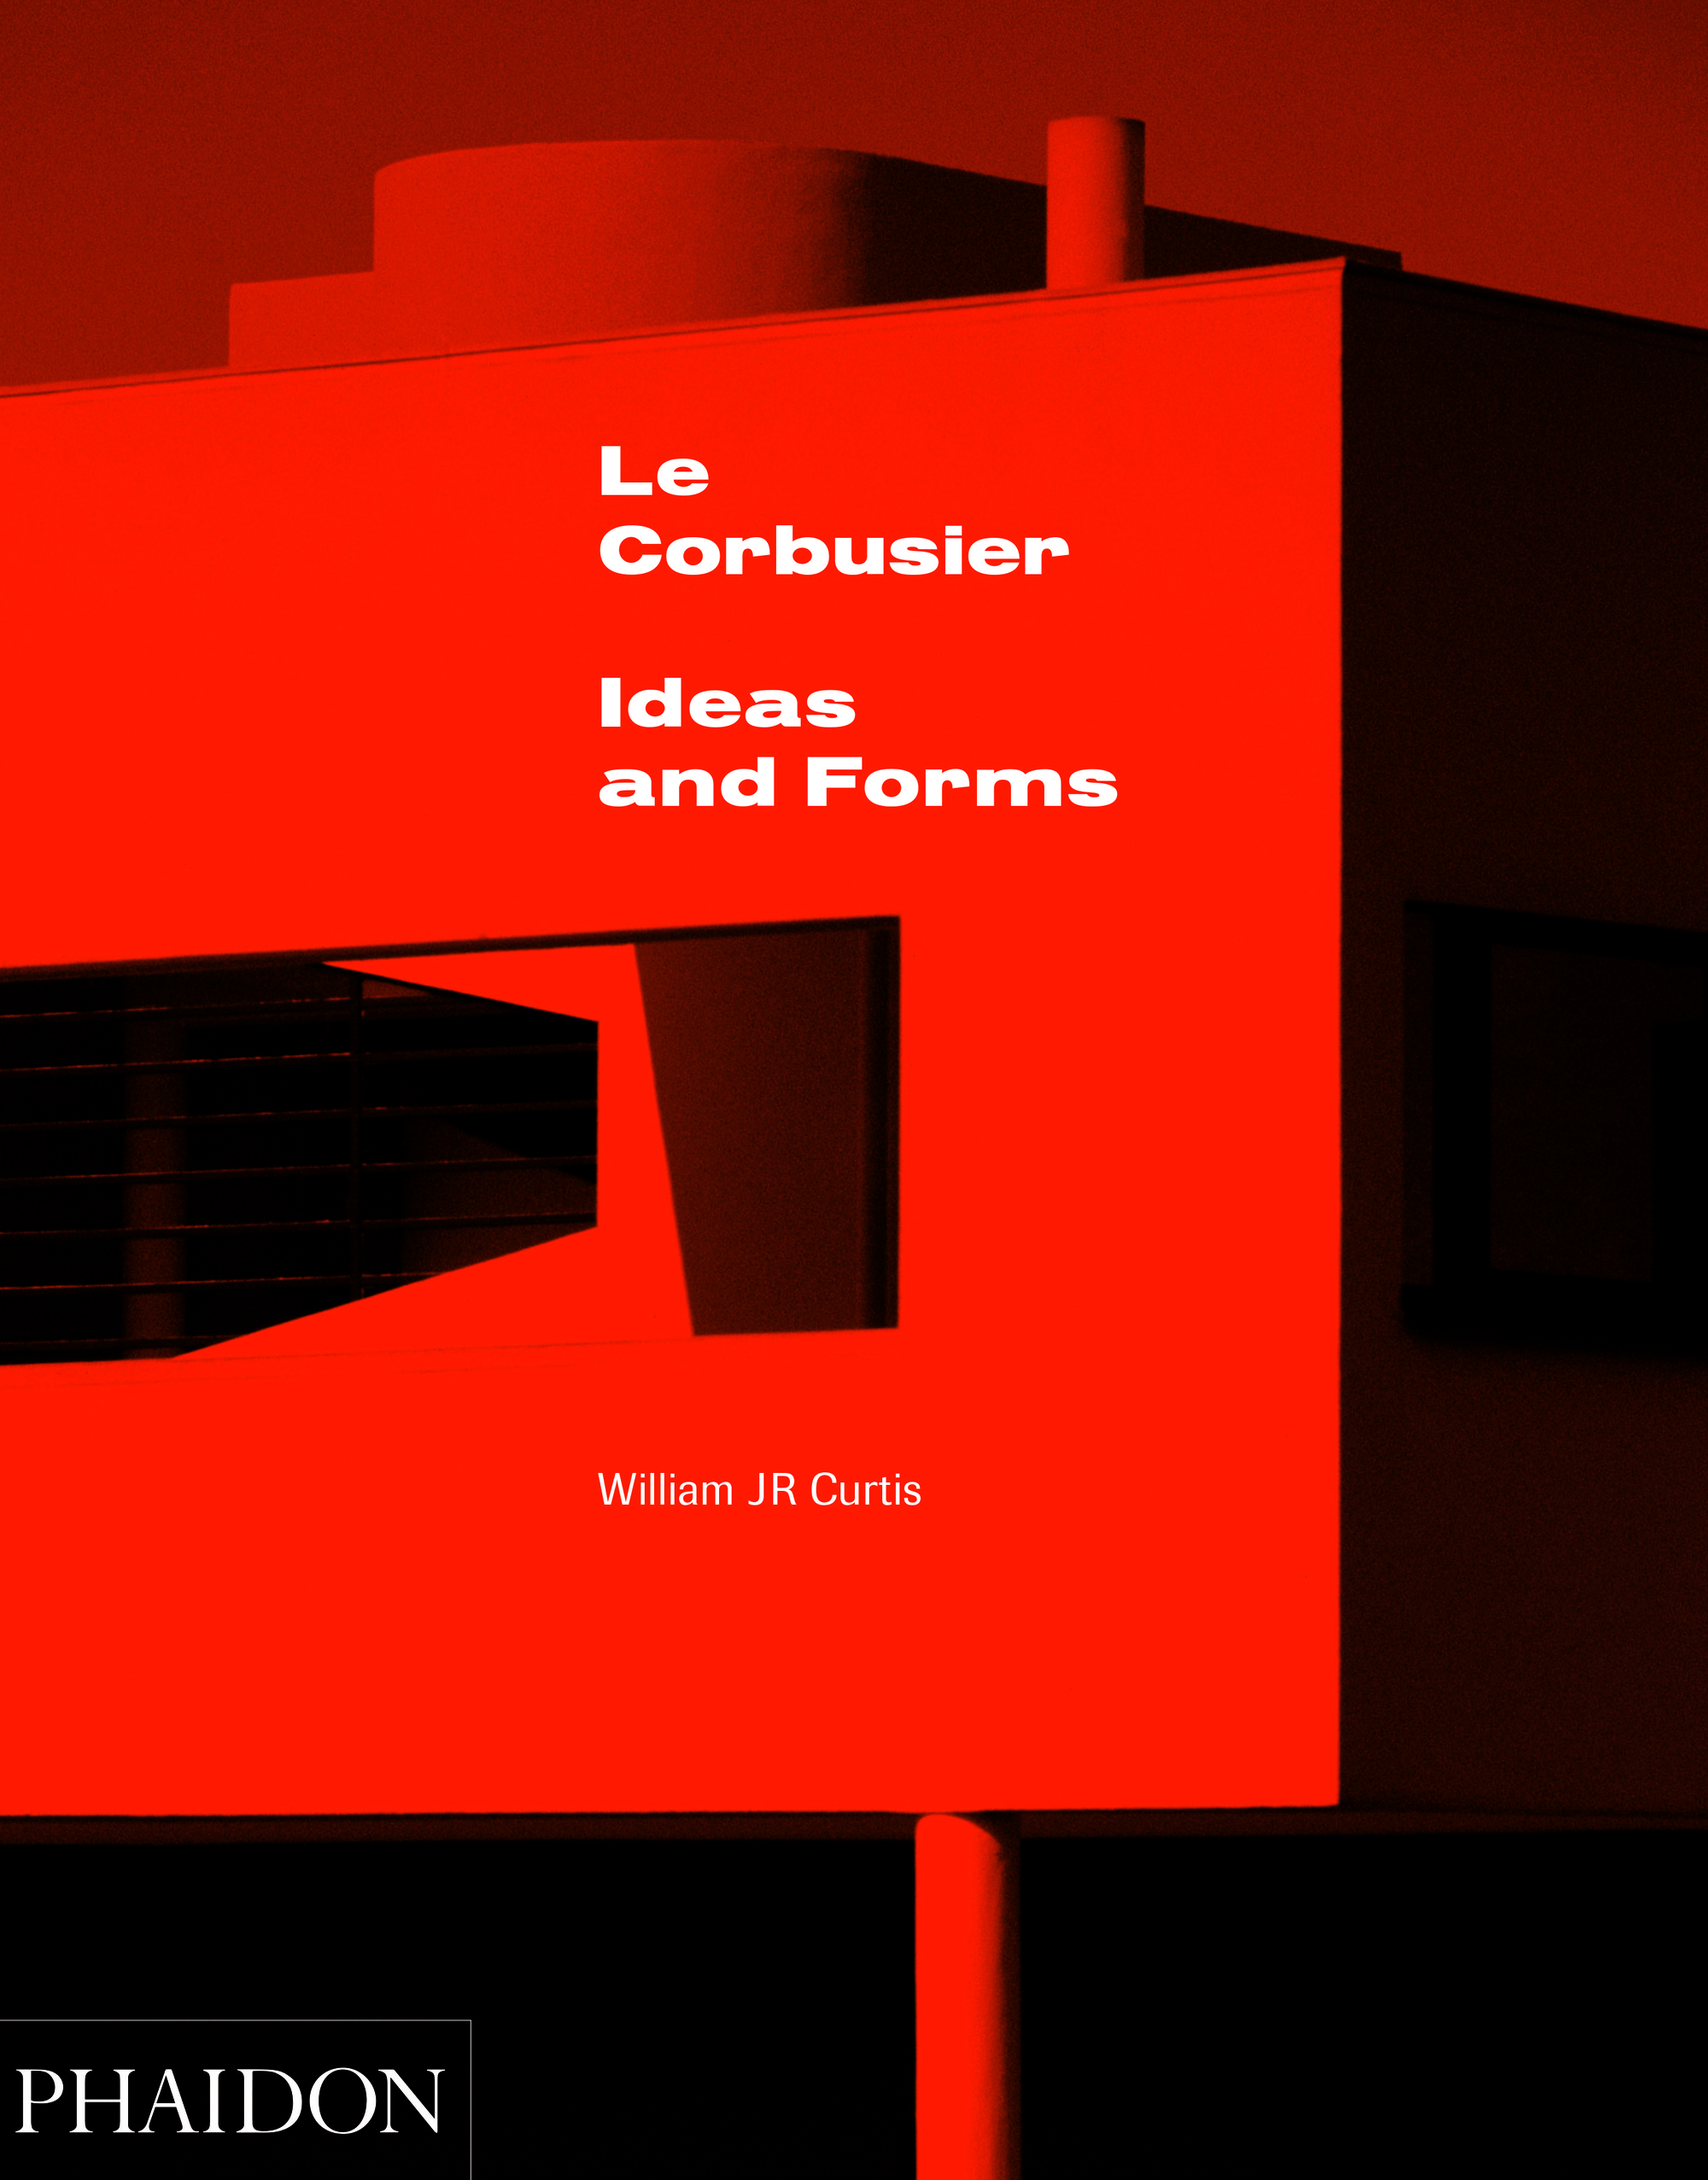 Le corbusier ideas and forms archdaily solutioingenieria Choice Image